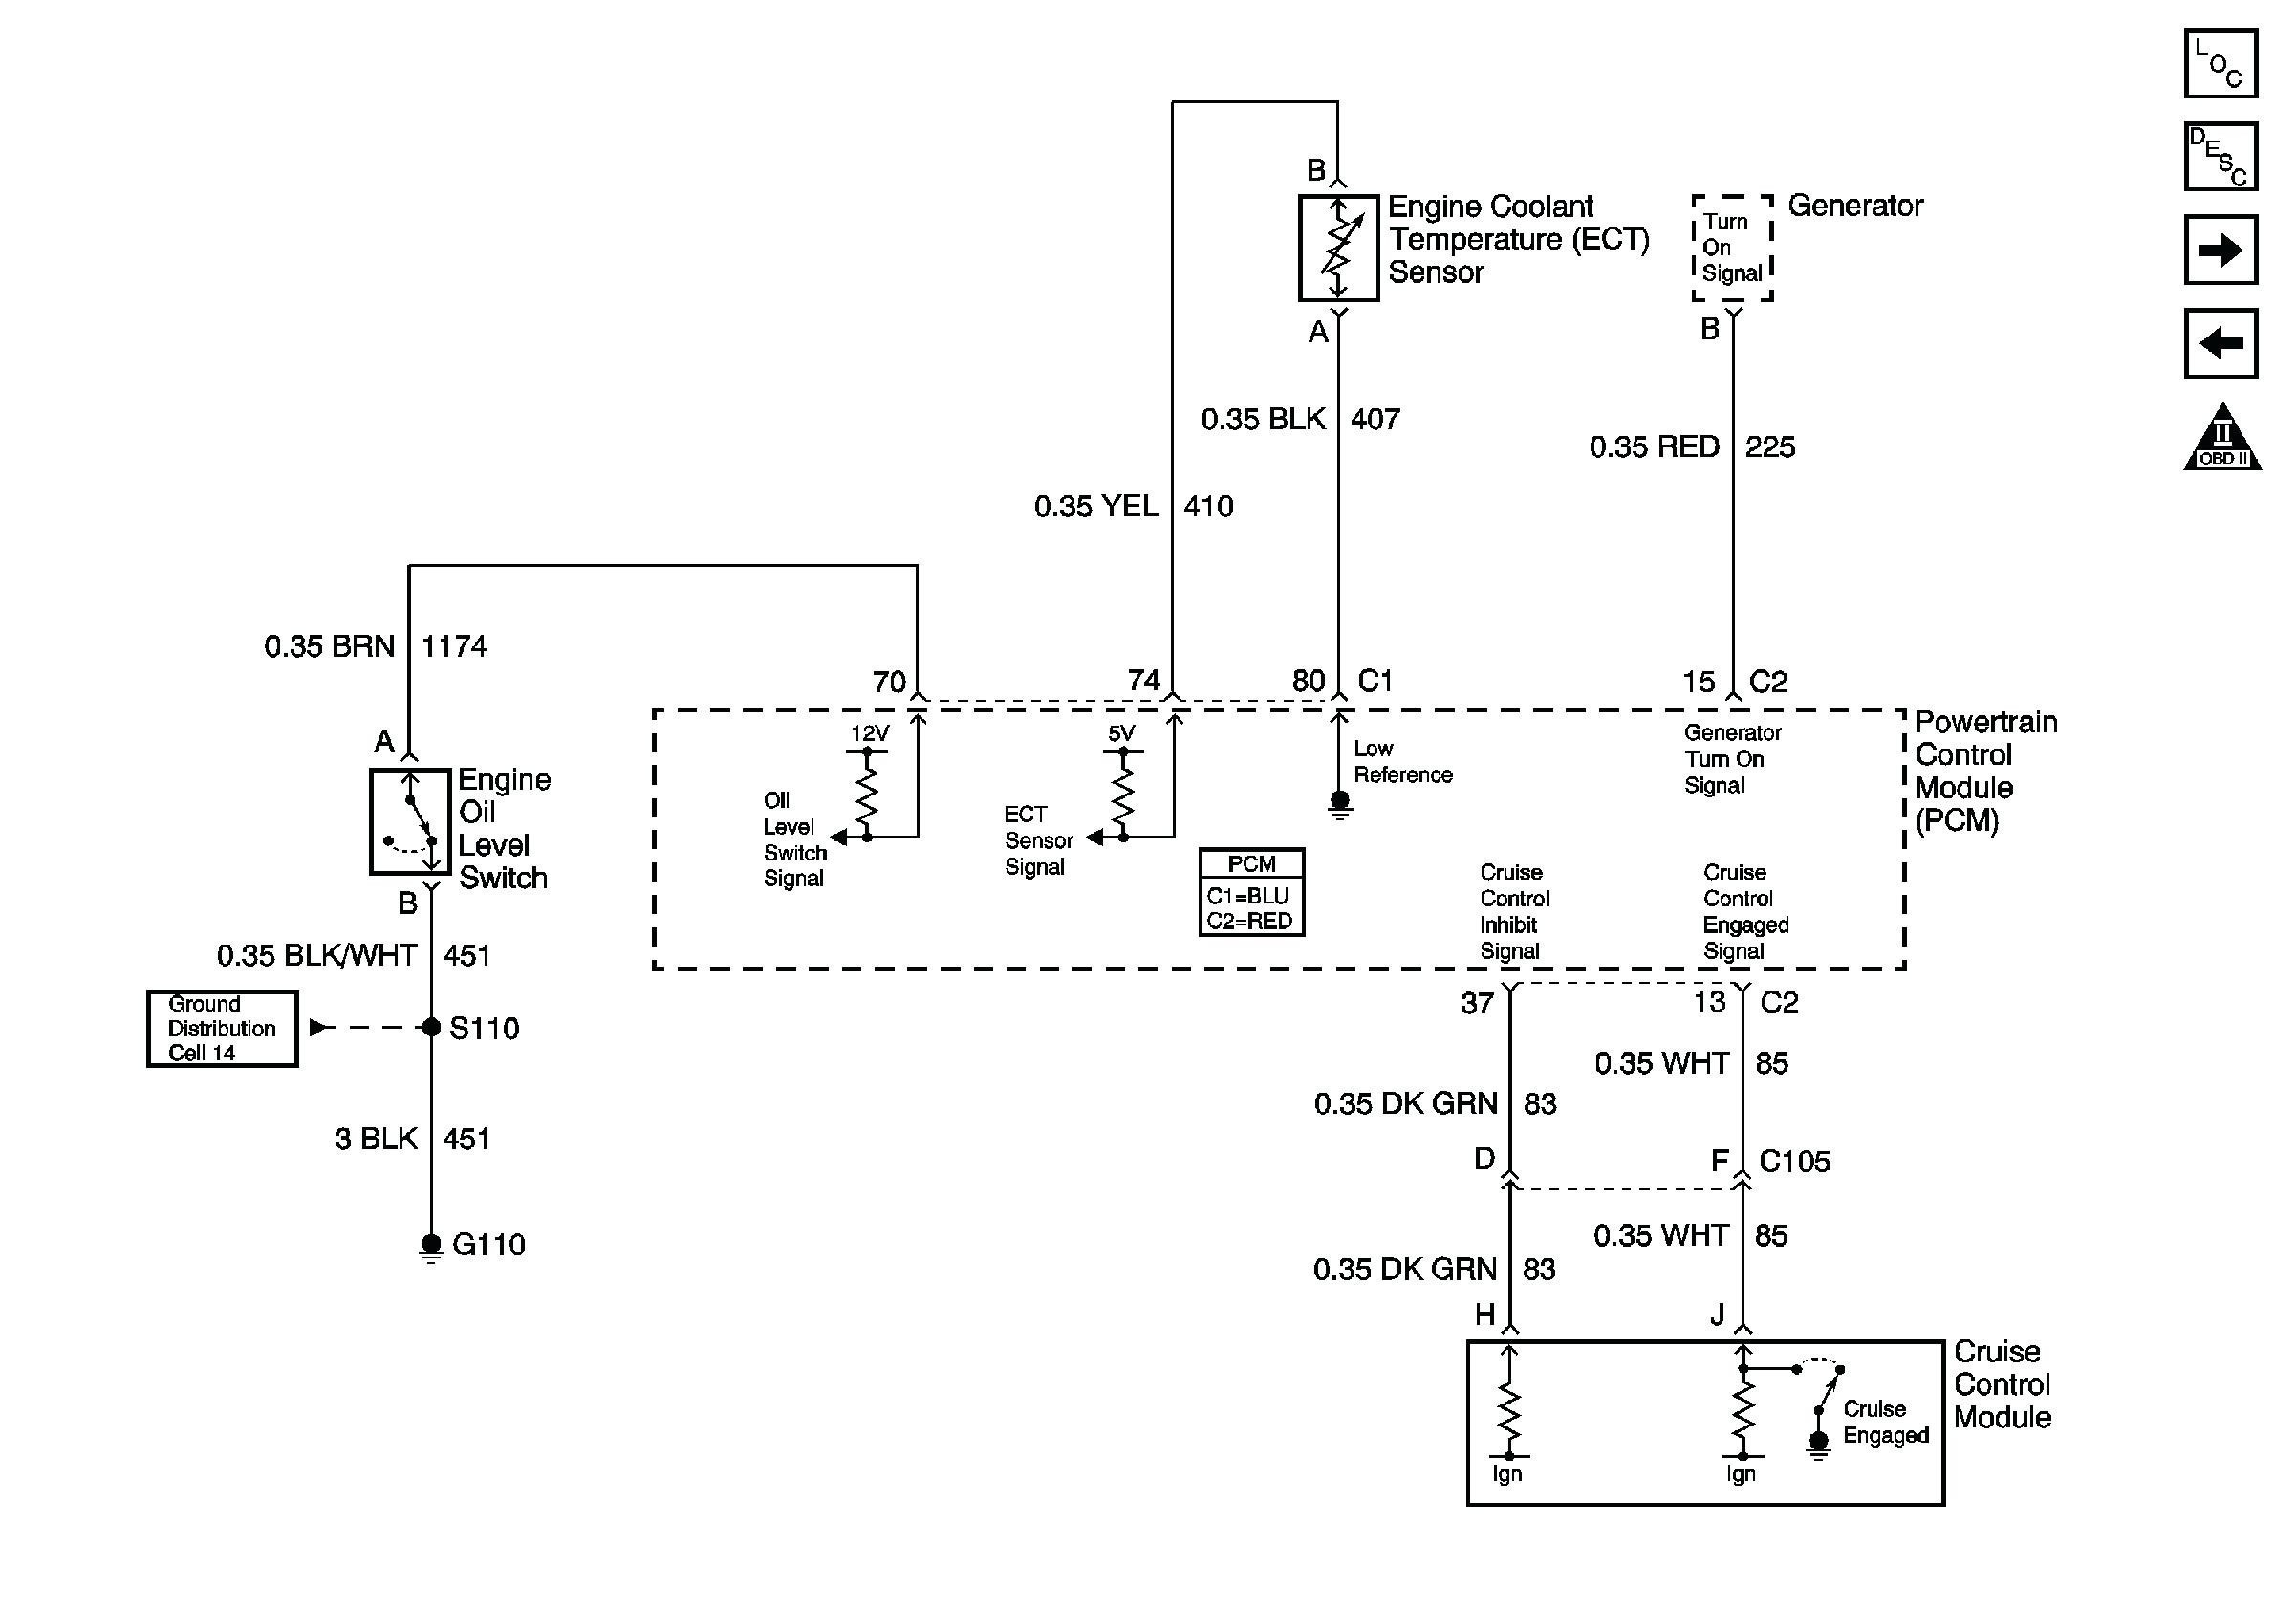 ac delco 4 wire alternator wiring diagram Download-Wiring Diagram For Ac  Delco Alternator Valid